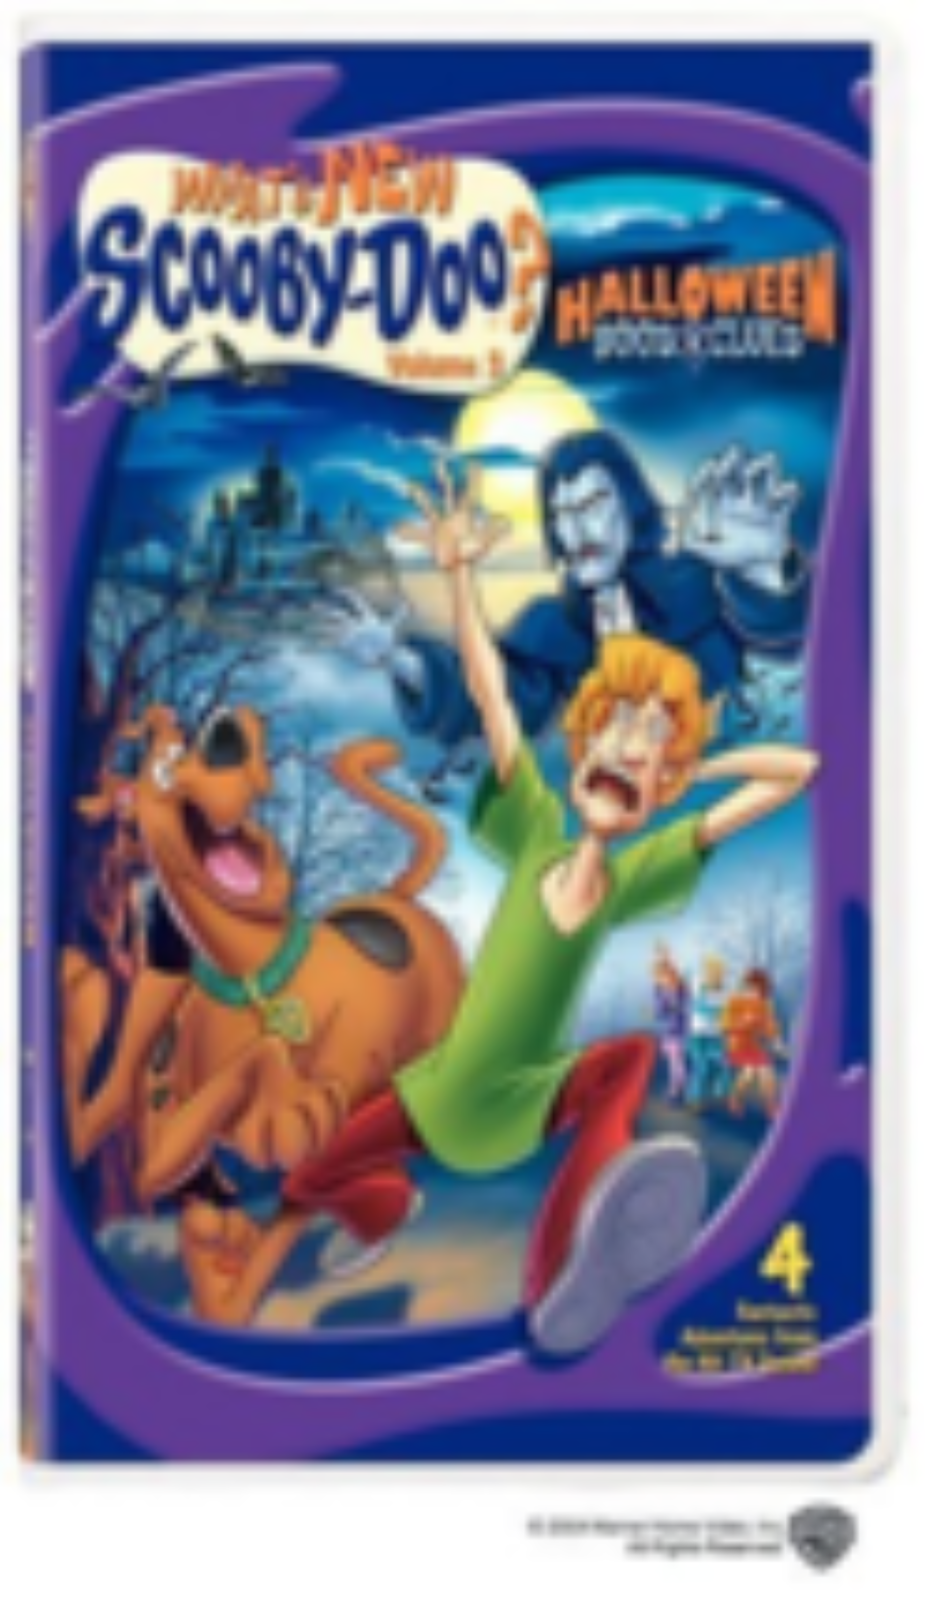 What's New Scooby-Doo, Vol. 3 - Halloween Boos and Clues Vhs